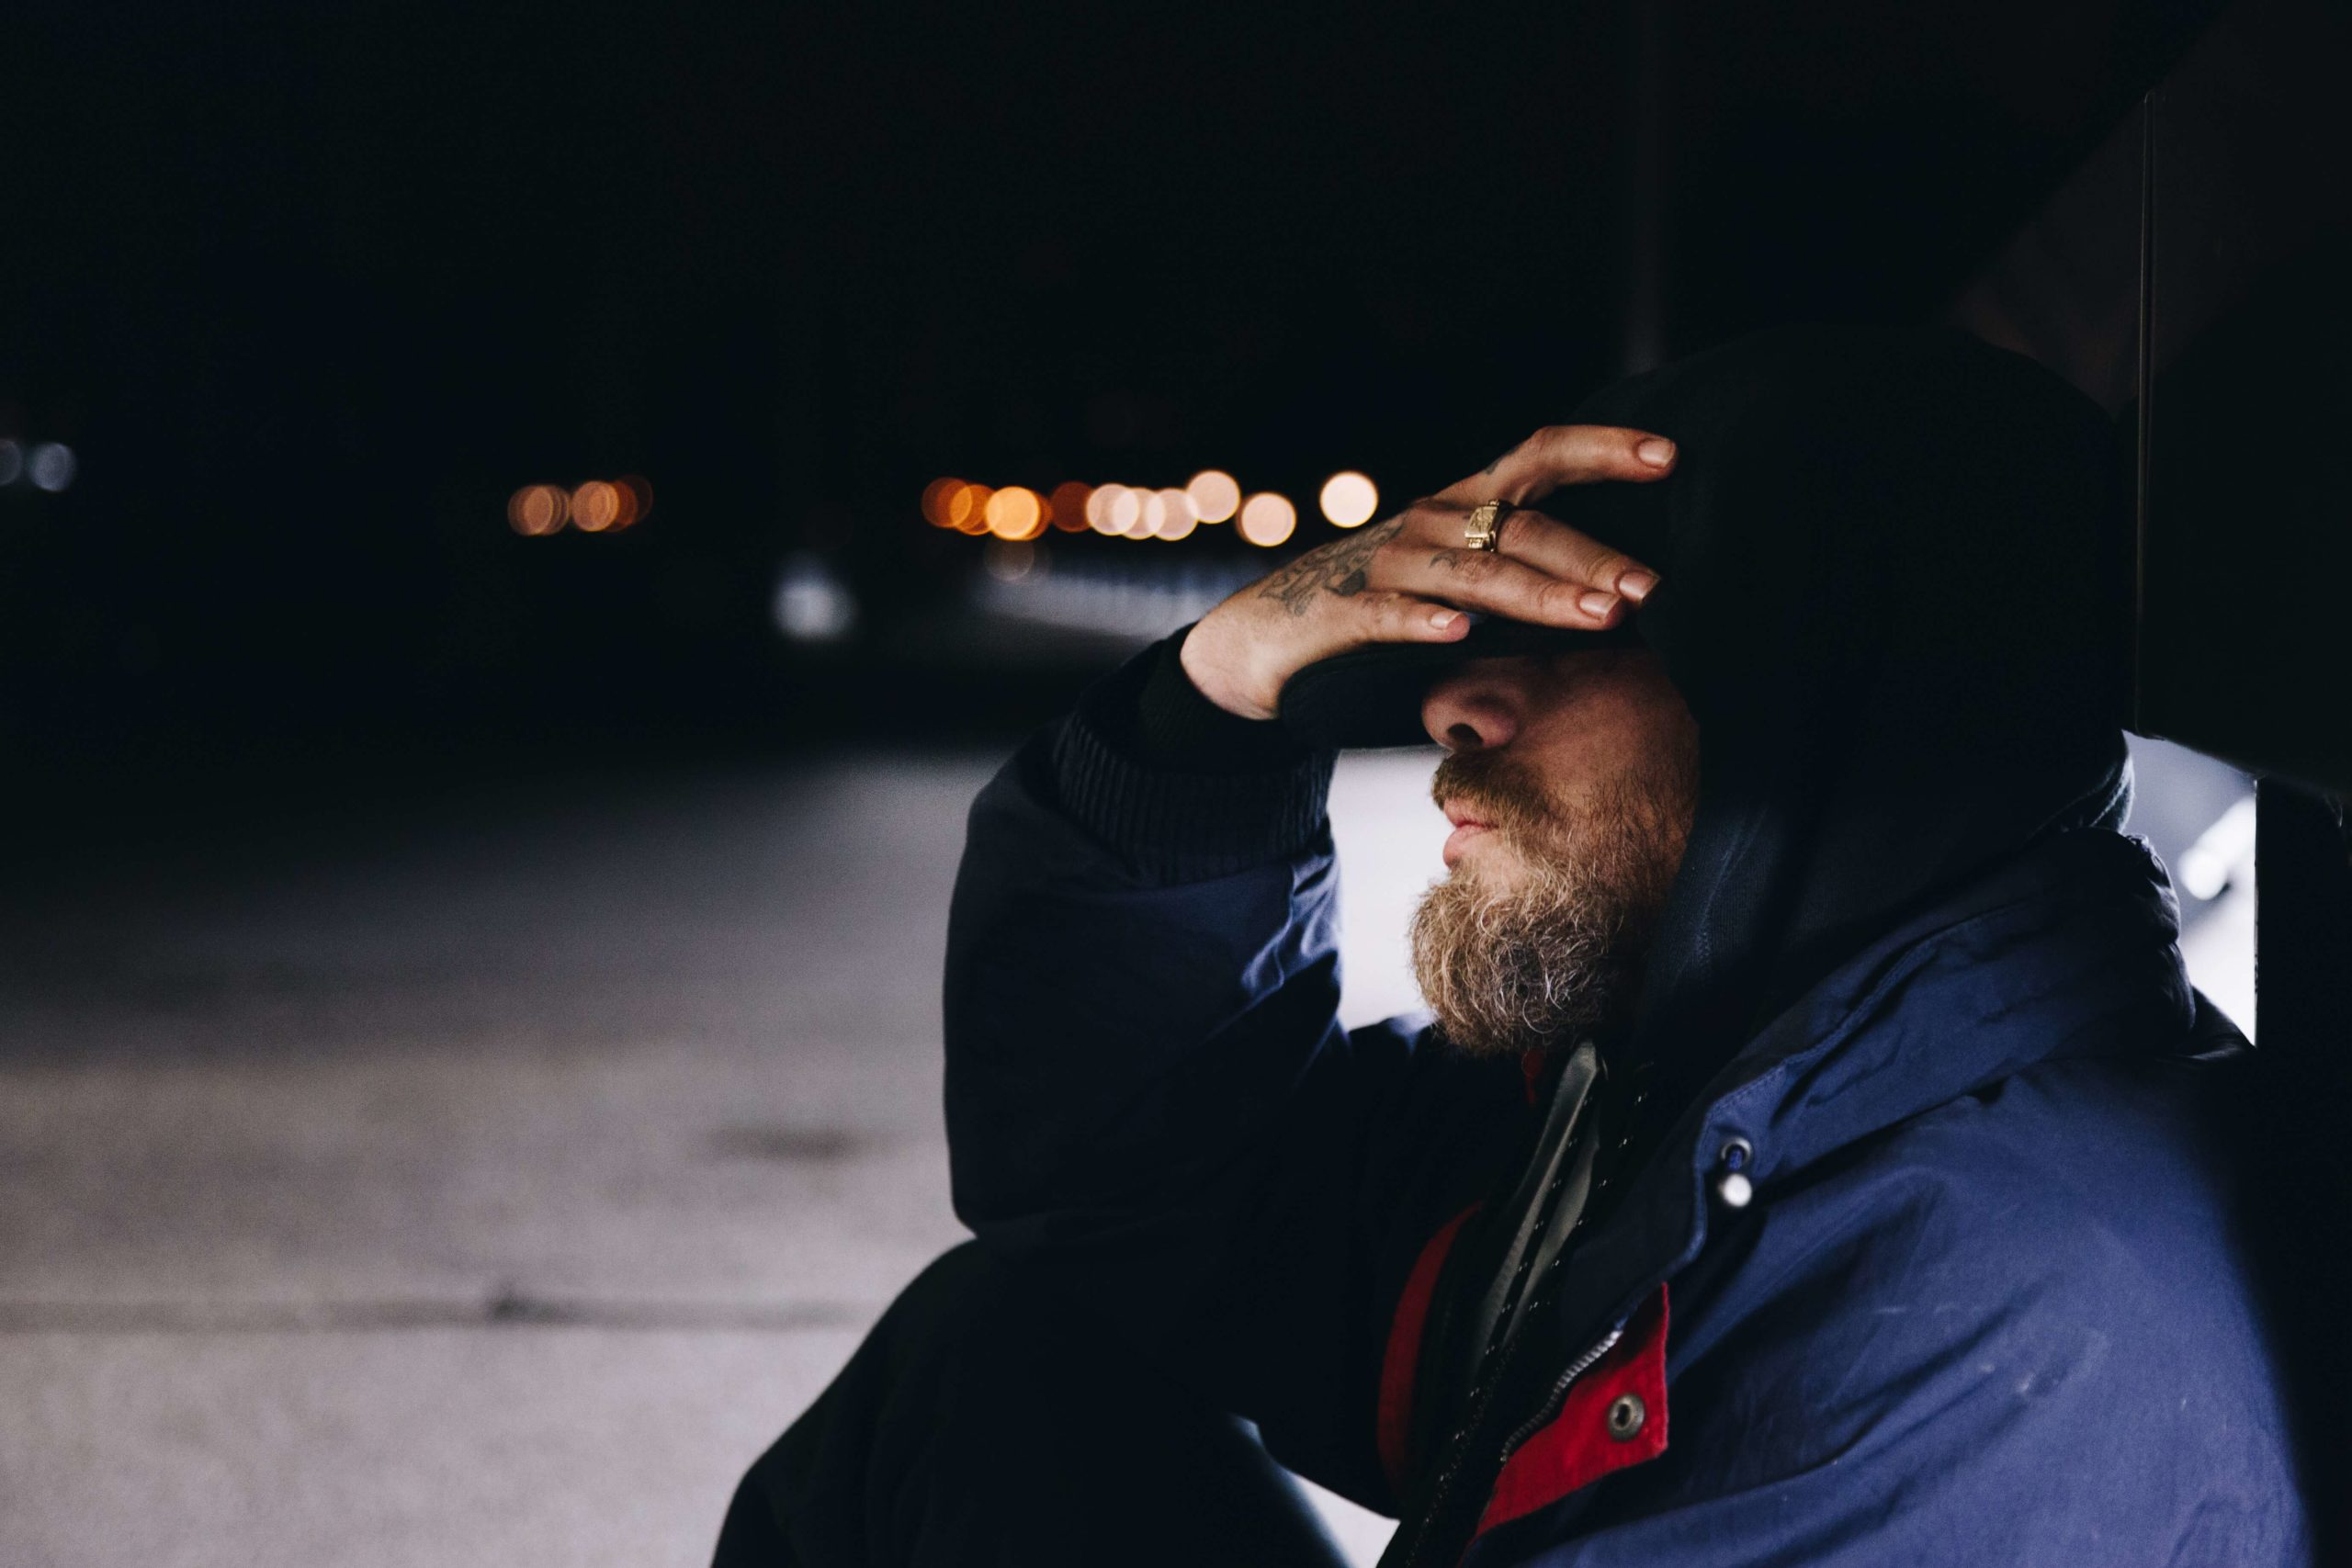 Homeless person covering his face